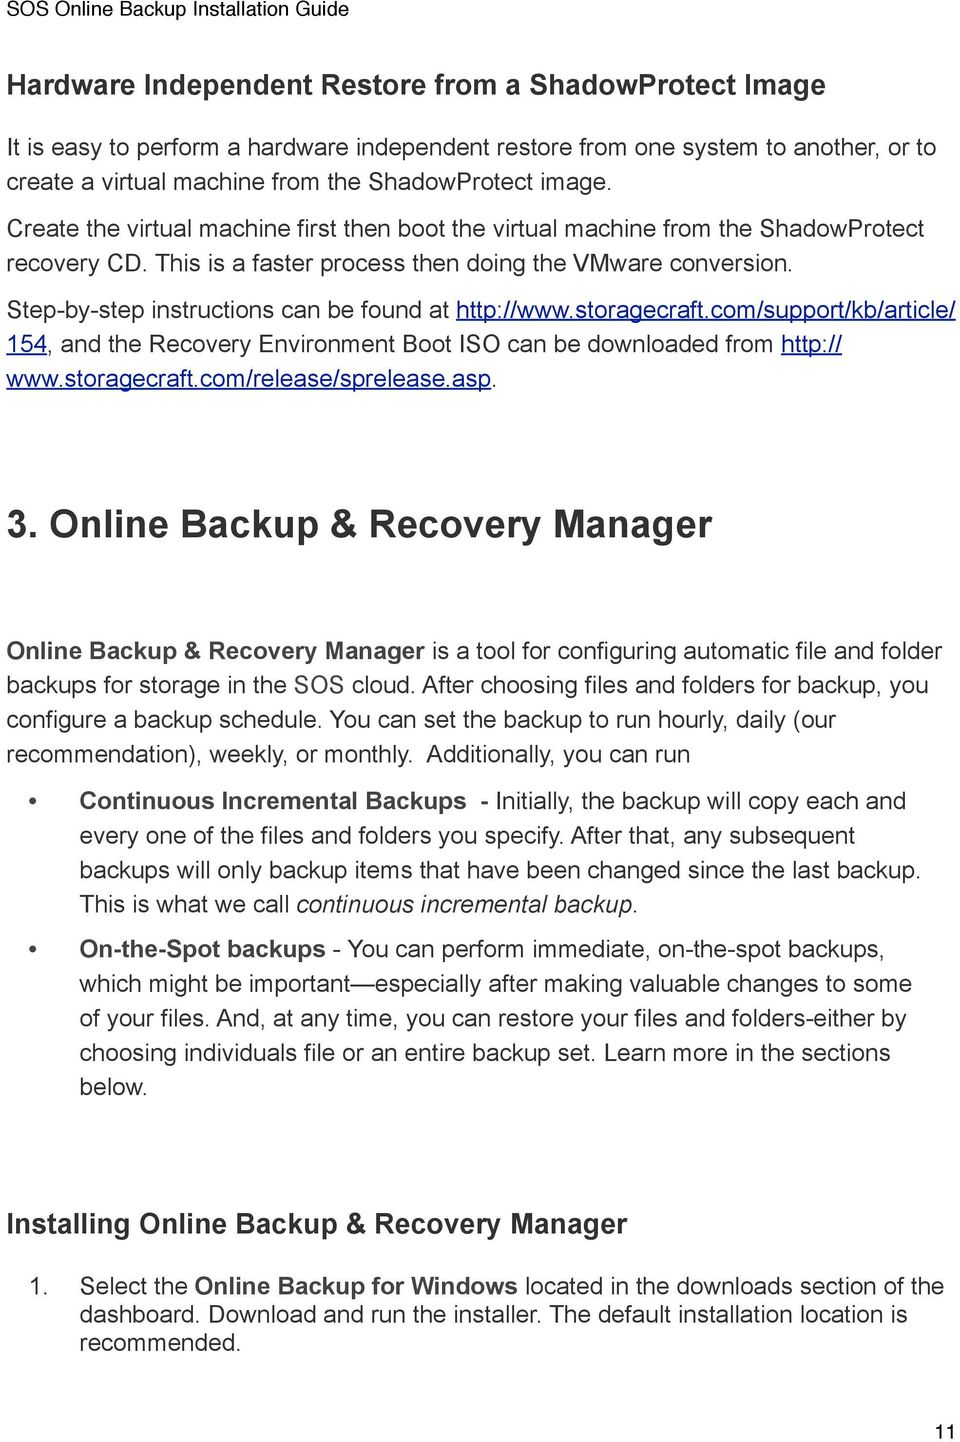 Step-by-step instructions can be found at http://www.storagecraft.com/support/kb/article/ 154, and the Recovery Environment Boot ISO can be downloaded from http:// www.storagecraft.com/release/sprelease.